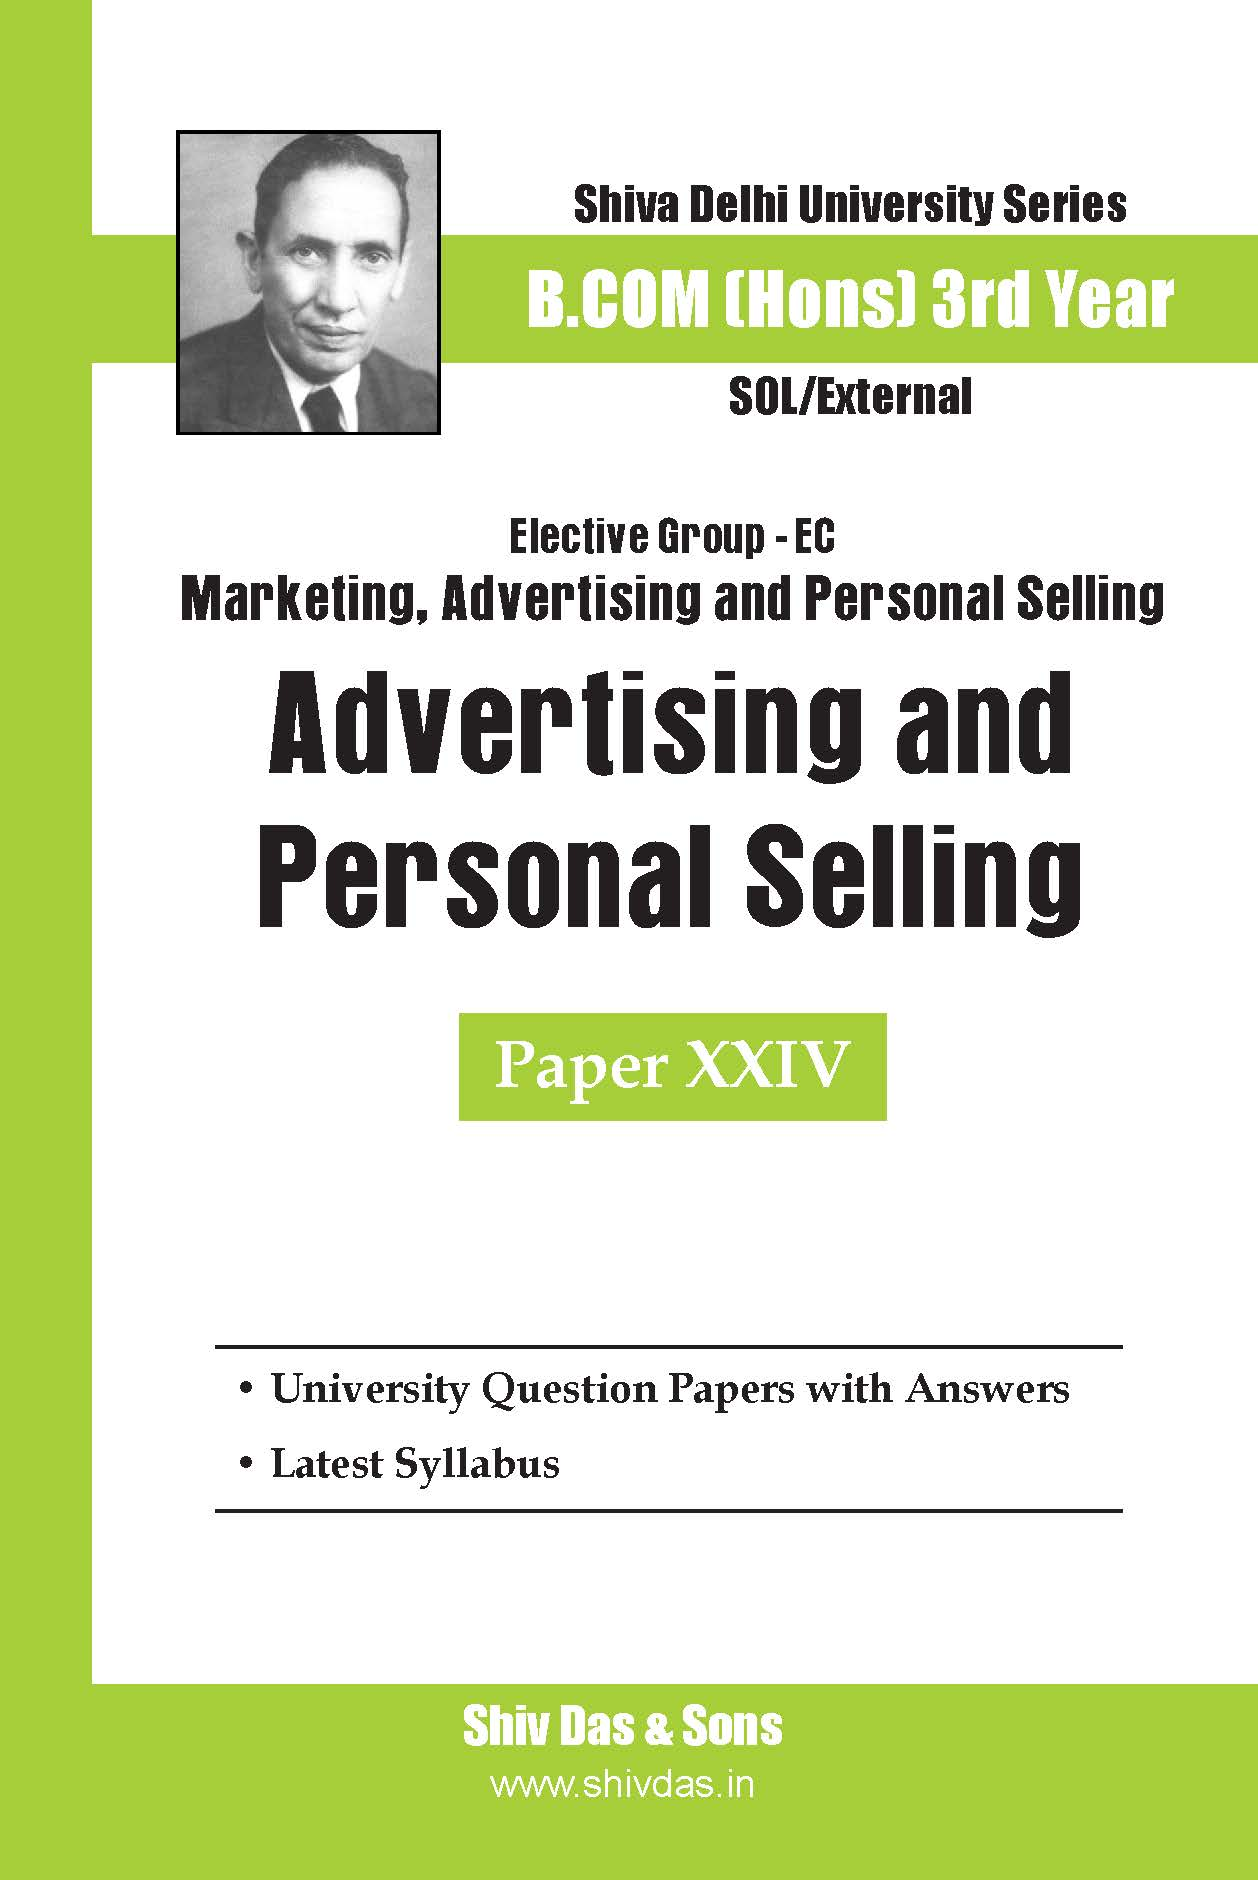 B.Com Hons-SOL/External-3rd Year-Advertising and Personal Selling-Shiv Das-Delhi University Series